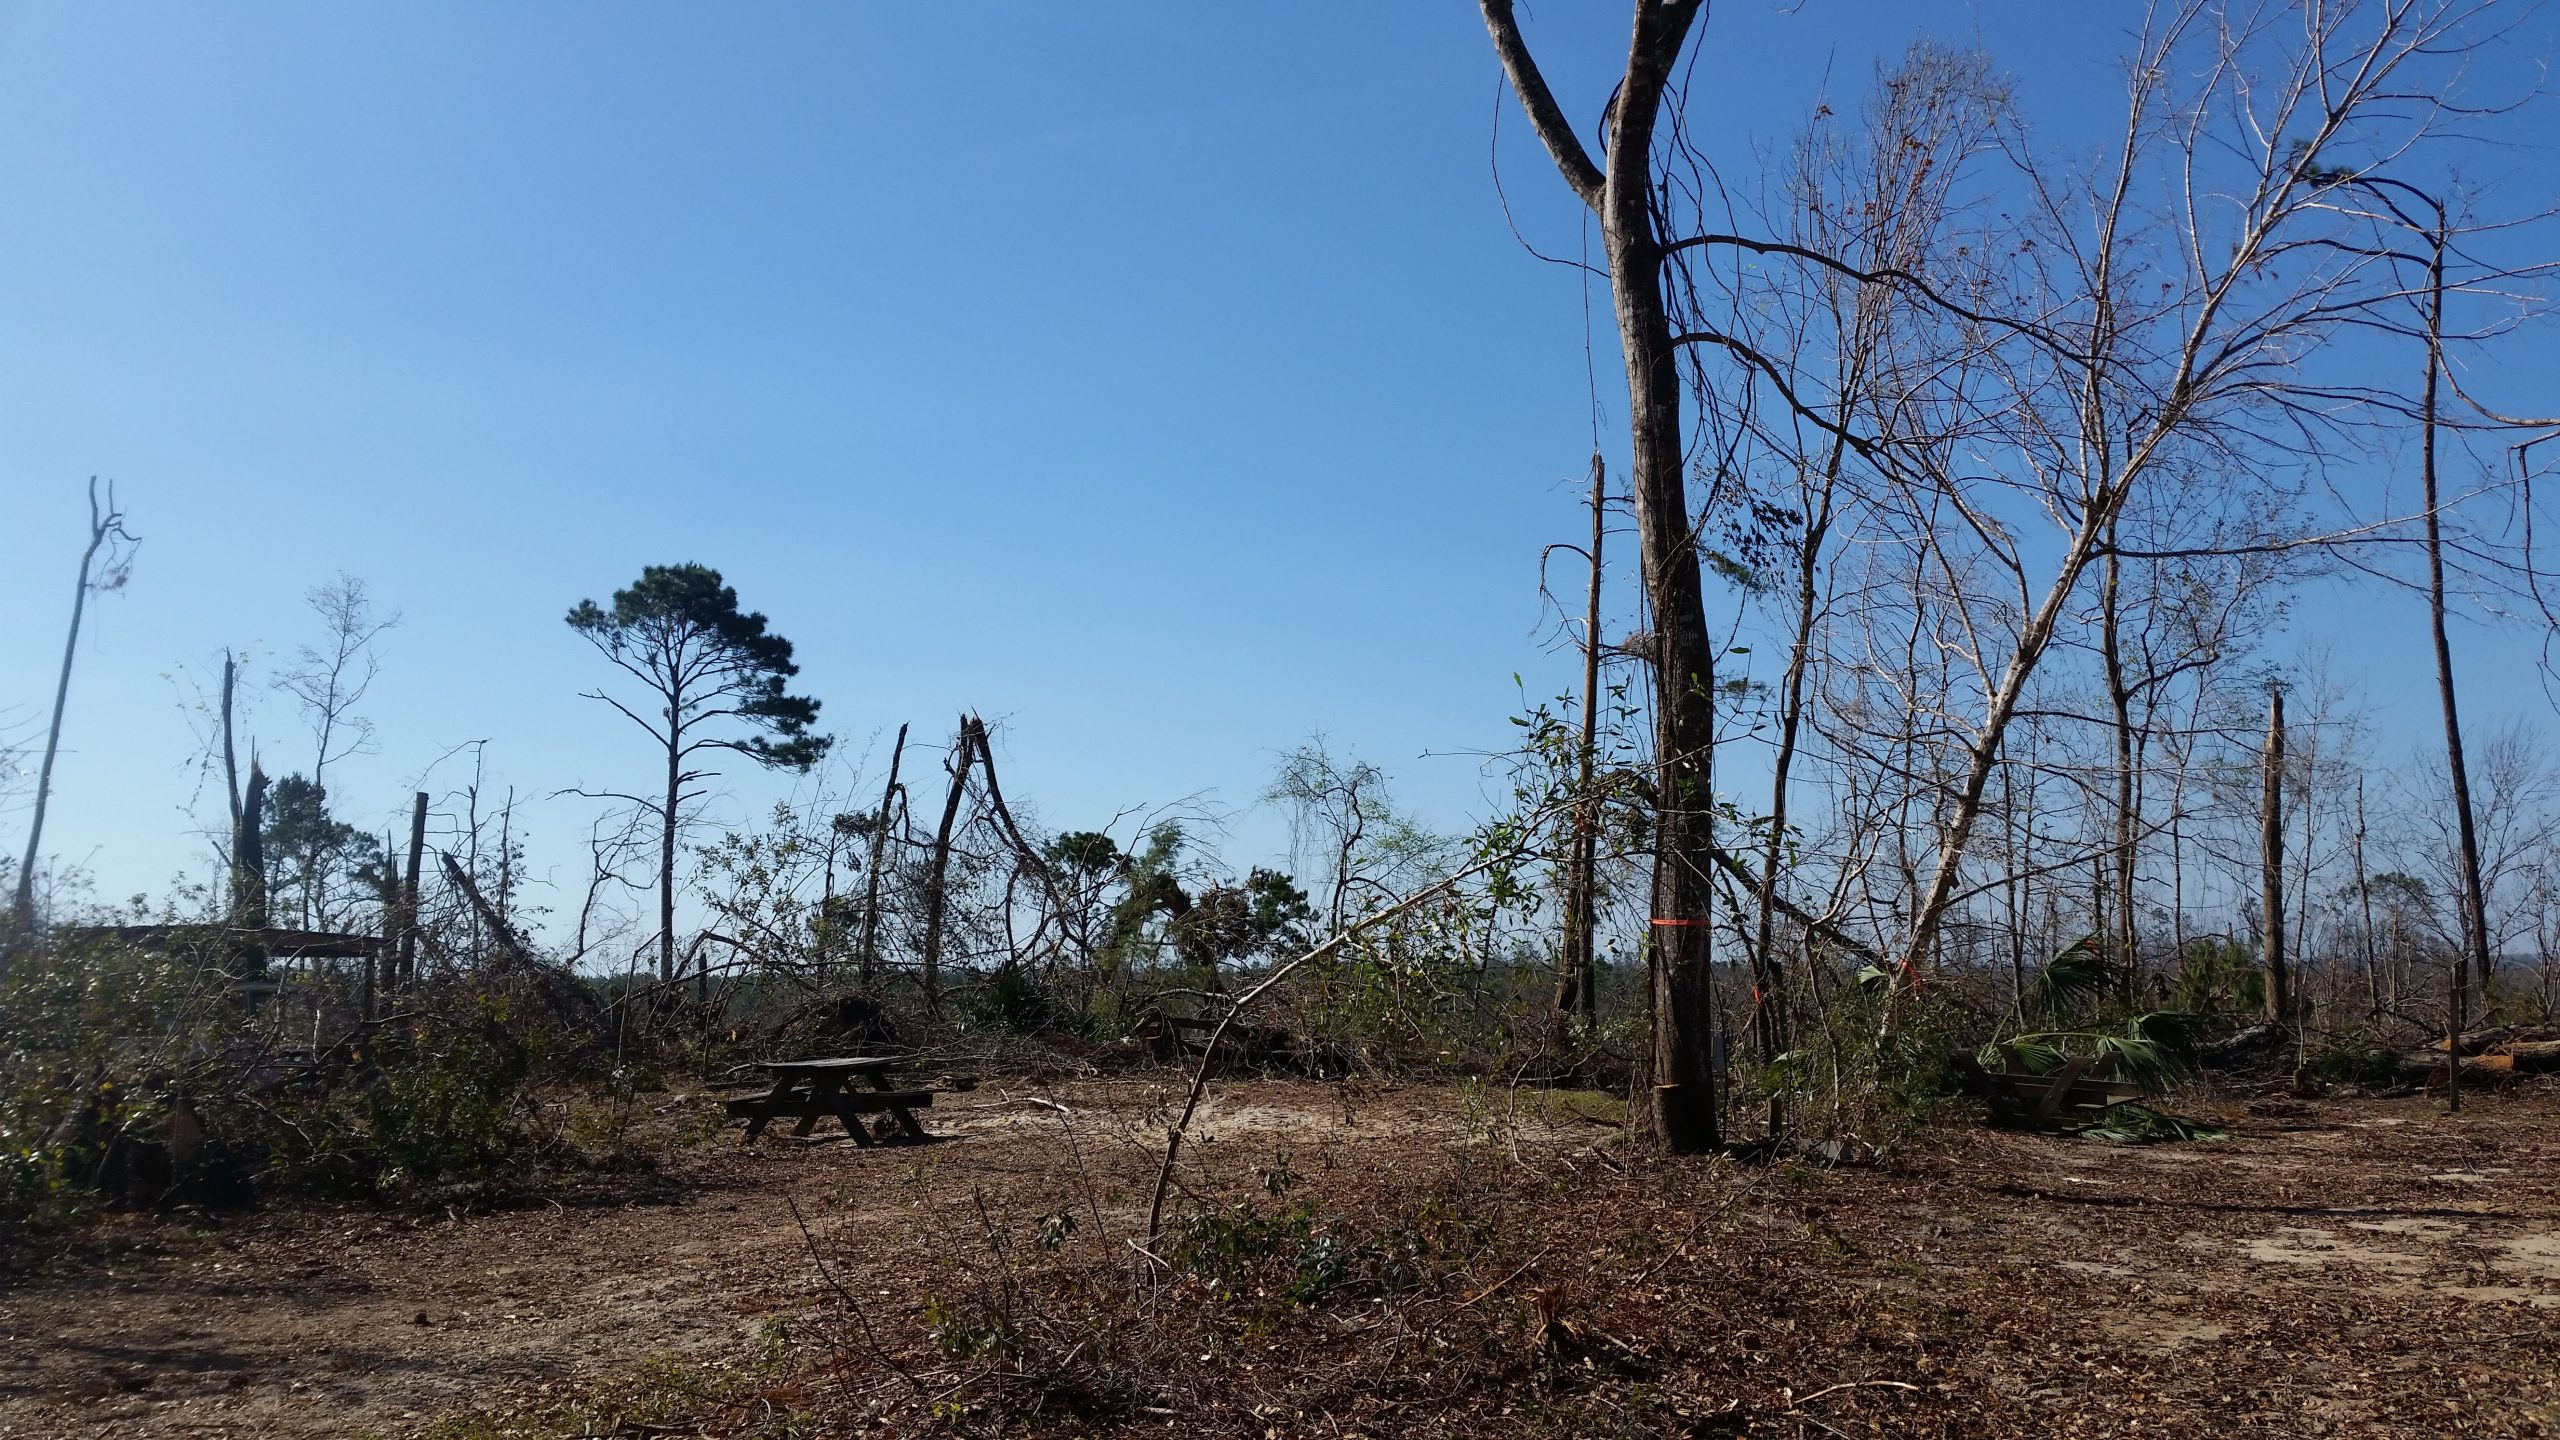 Hurricane Michael in 2018 severely damaged much of the forest in the Torreya State Park, including the rare conifers habitat and the trees themselves.